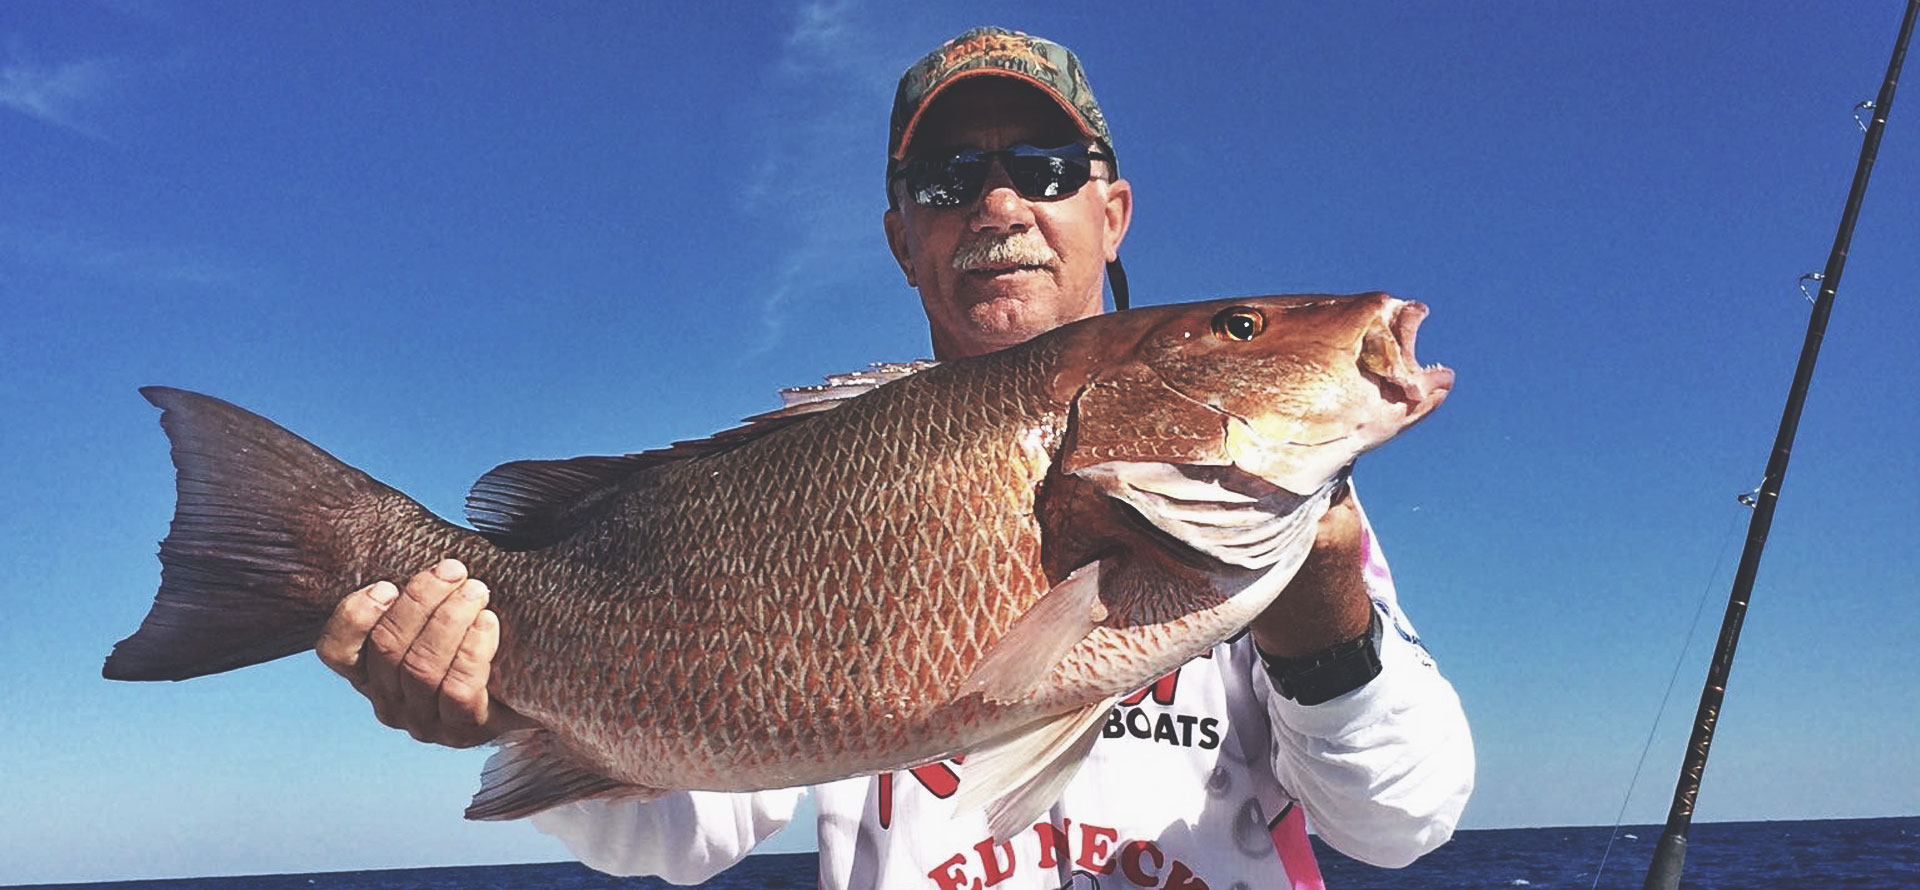 j-hook-fishing-charters-st-augustine-florida-snapper-tournament